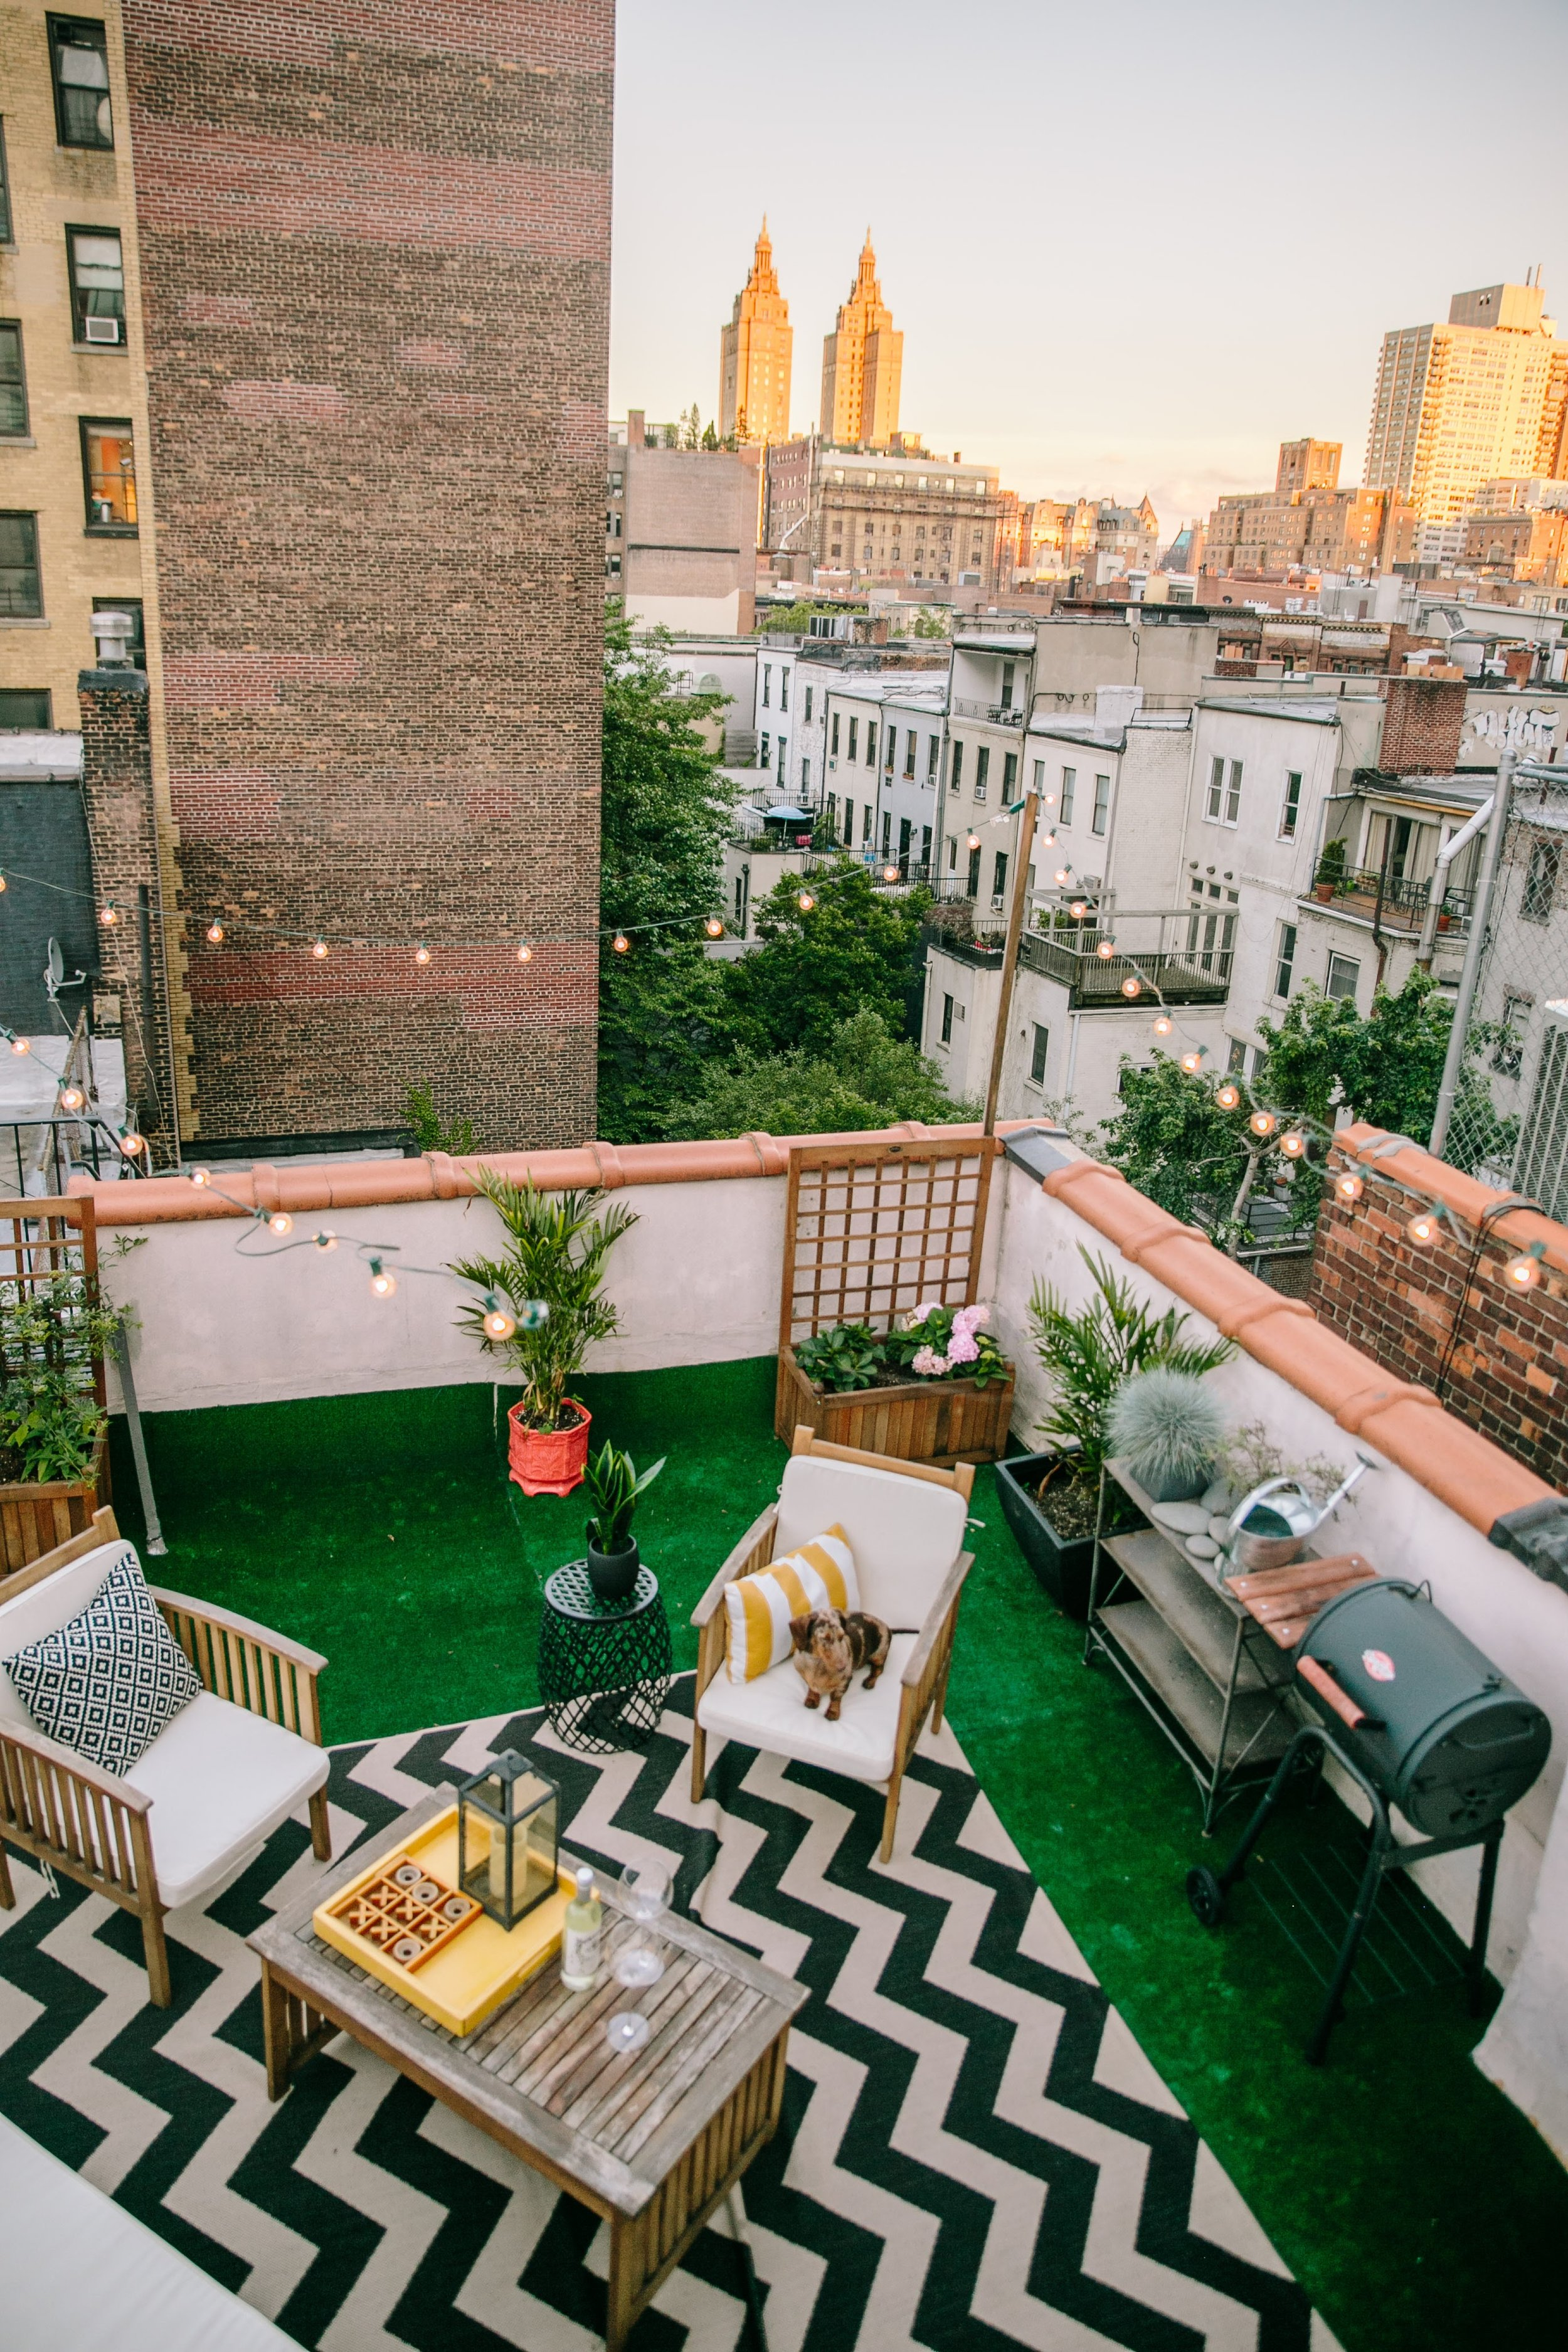 Our little roof deck where the pups love to play